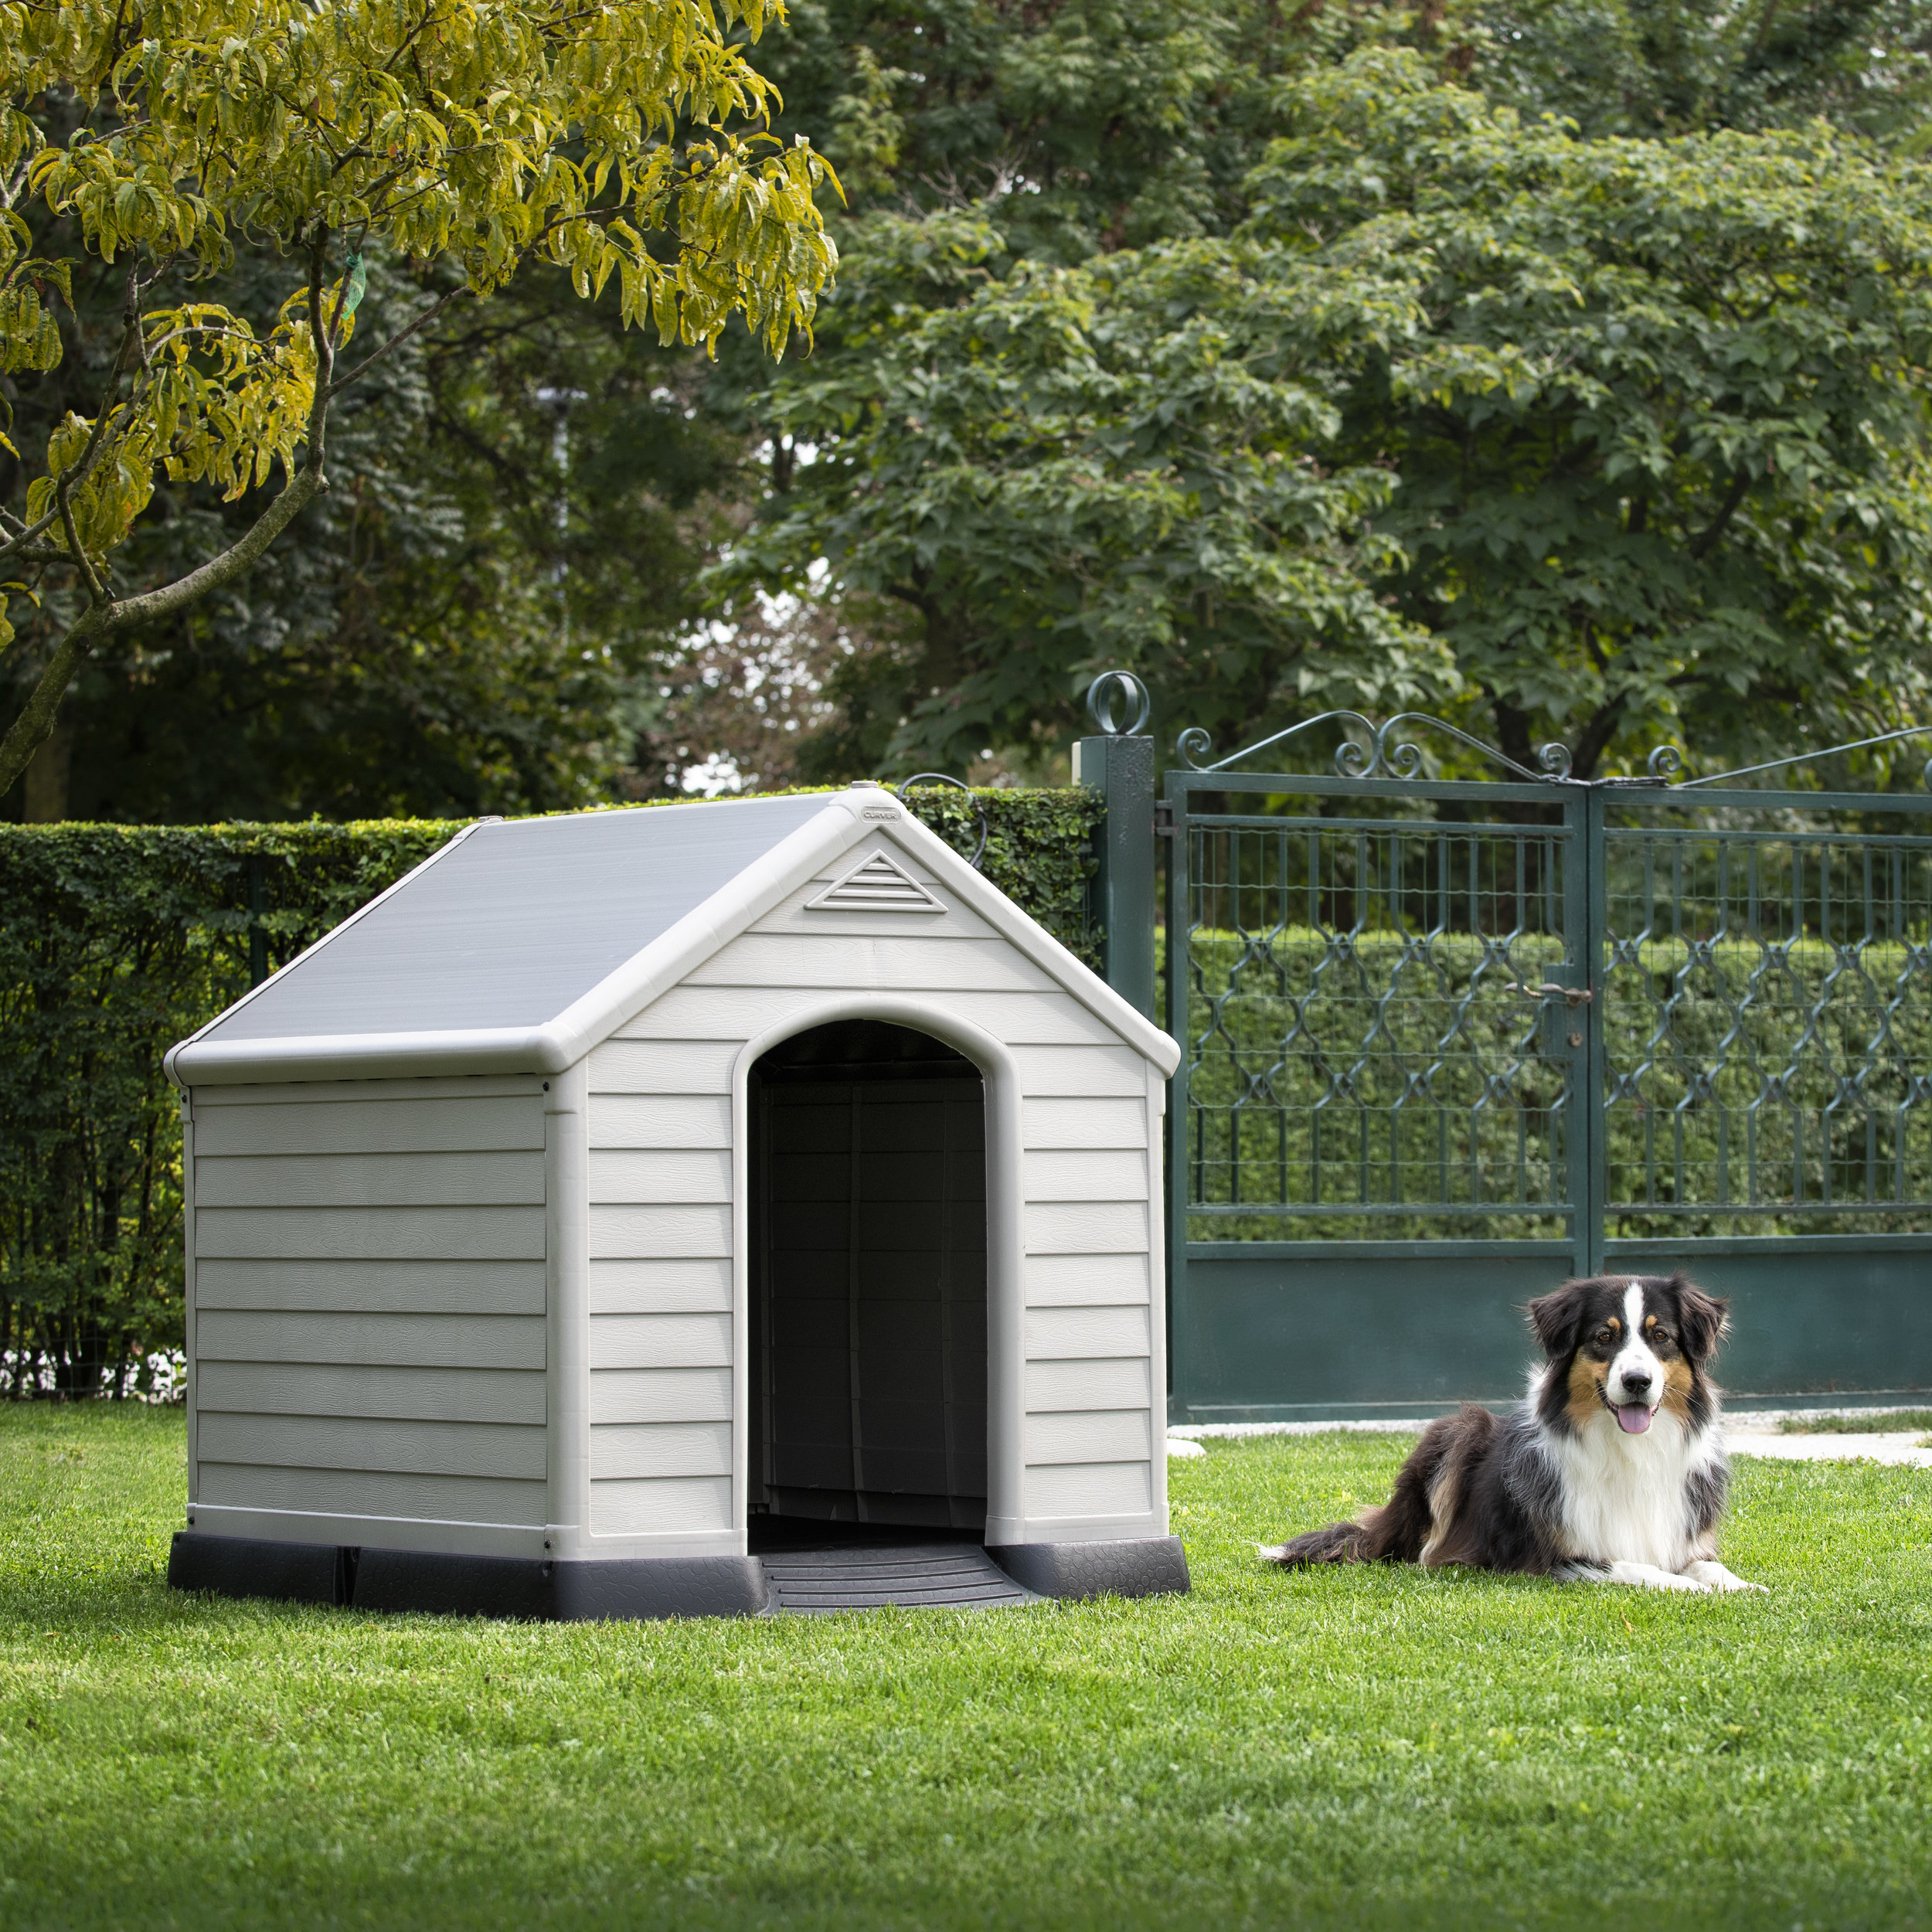 DOG HOUSE with dog.jpg